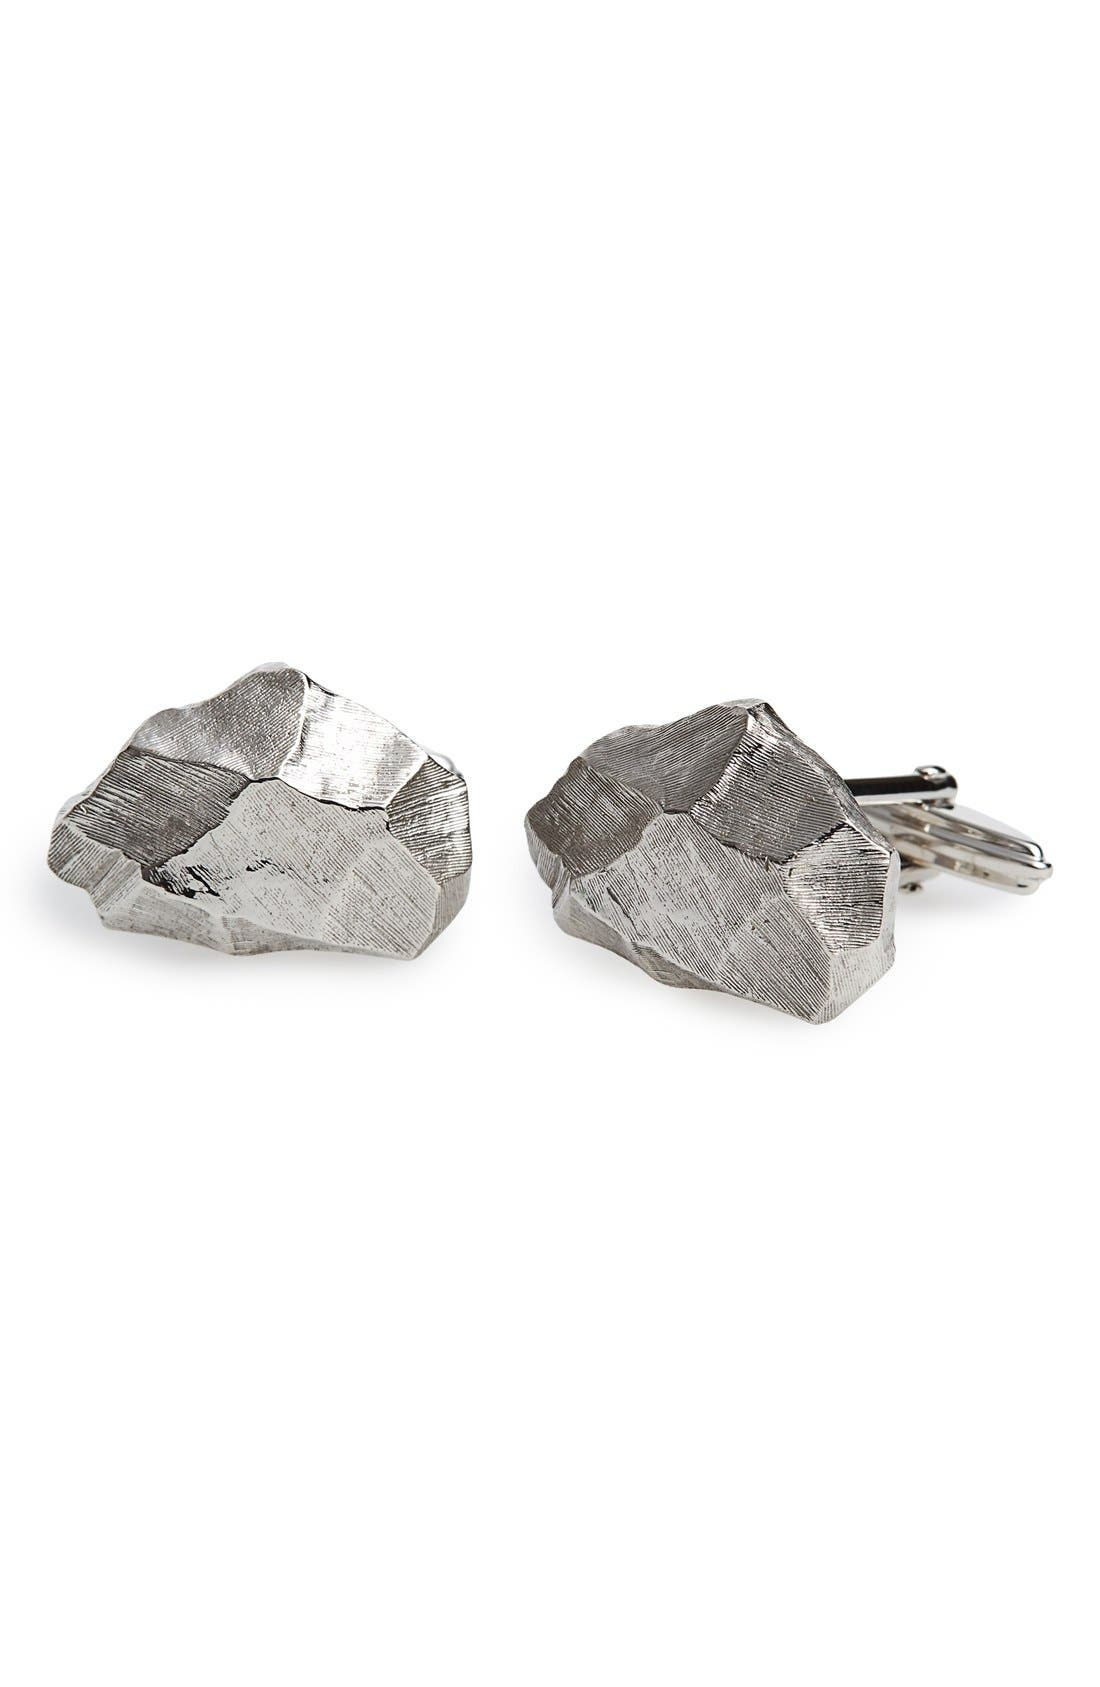 Nugget Cuff Links,                             Main thumbnail 1, color,                             Silver